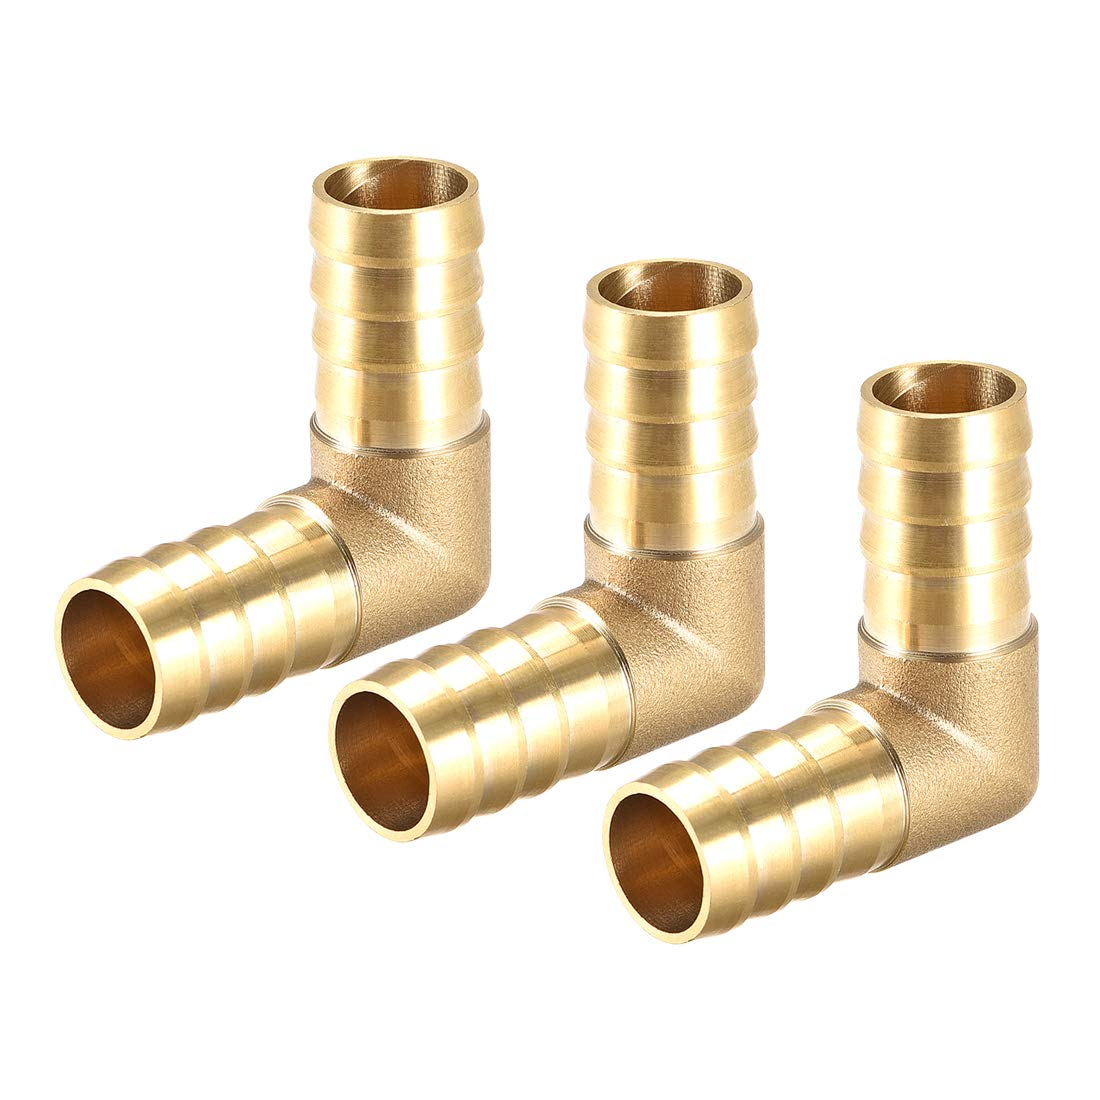 uxcell 16mm Barb Brass Hose Fitting 90 Degree Elbow Pipe Connector Coupler Tubing Adapter 3pcs